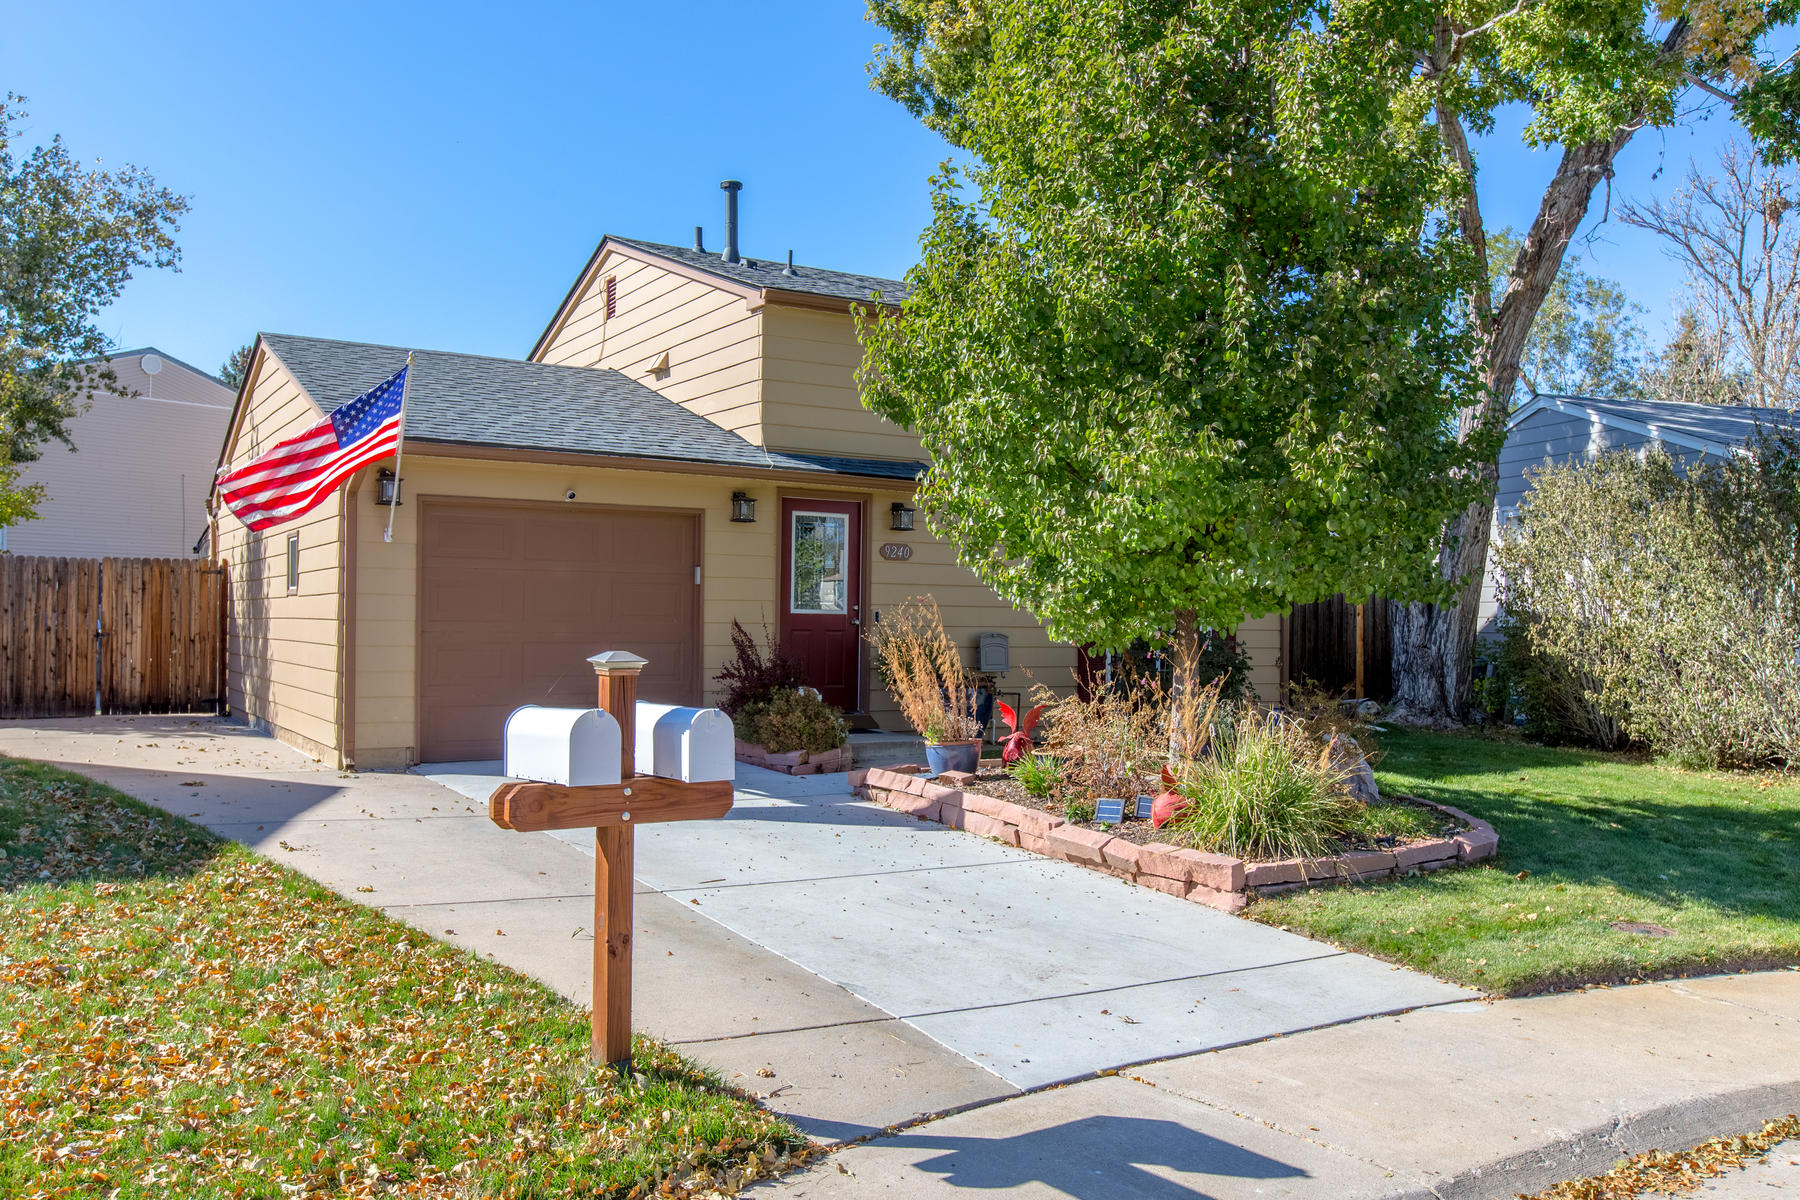 Single Family Home for Active at 9240 West 100th Circle 9240 West 100th Circle Westminster, Colorado 80021 United States